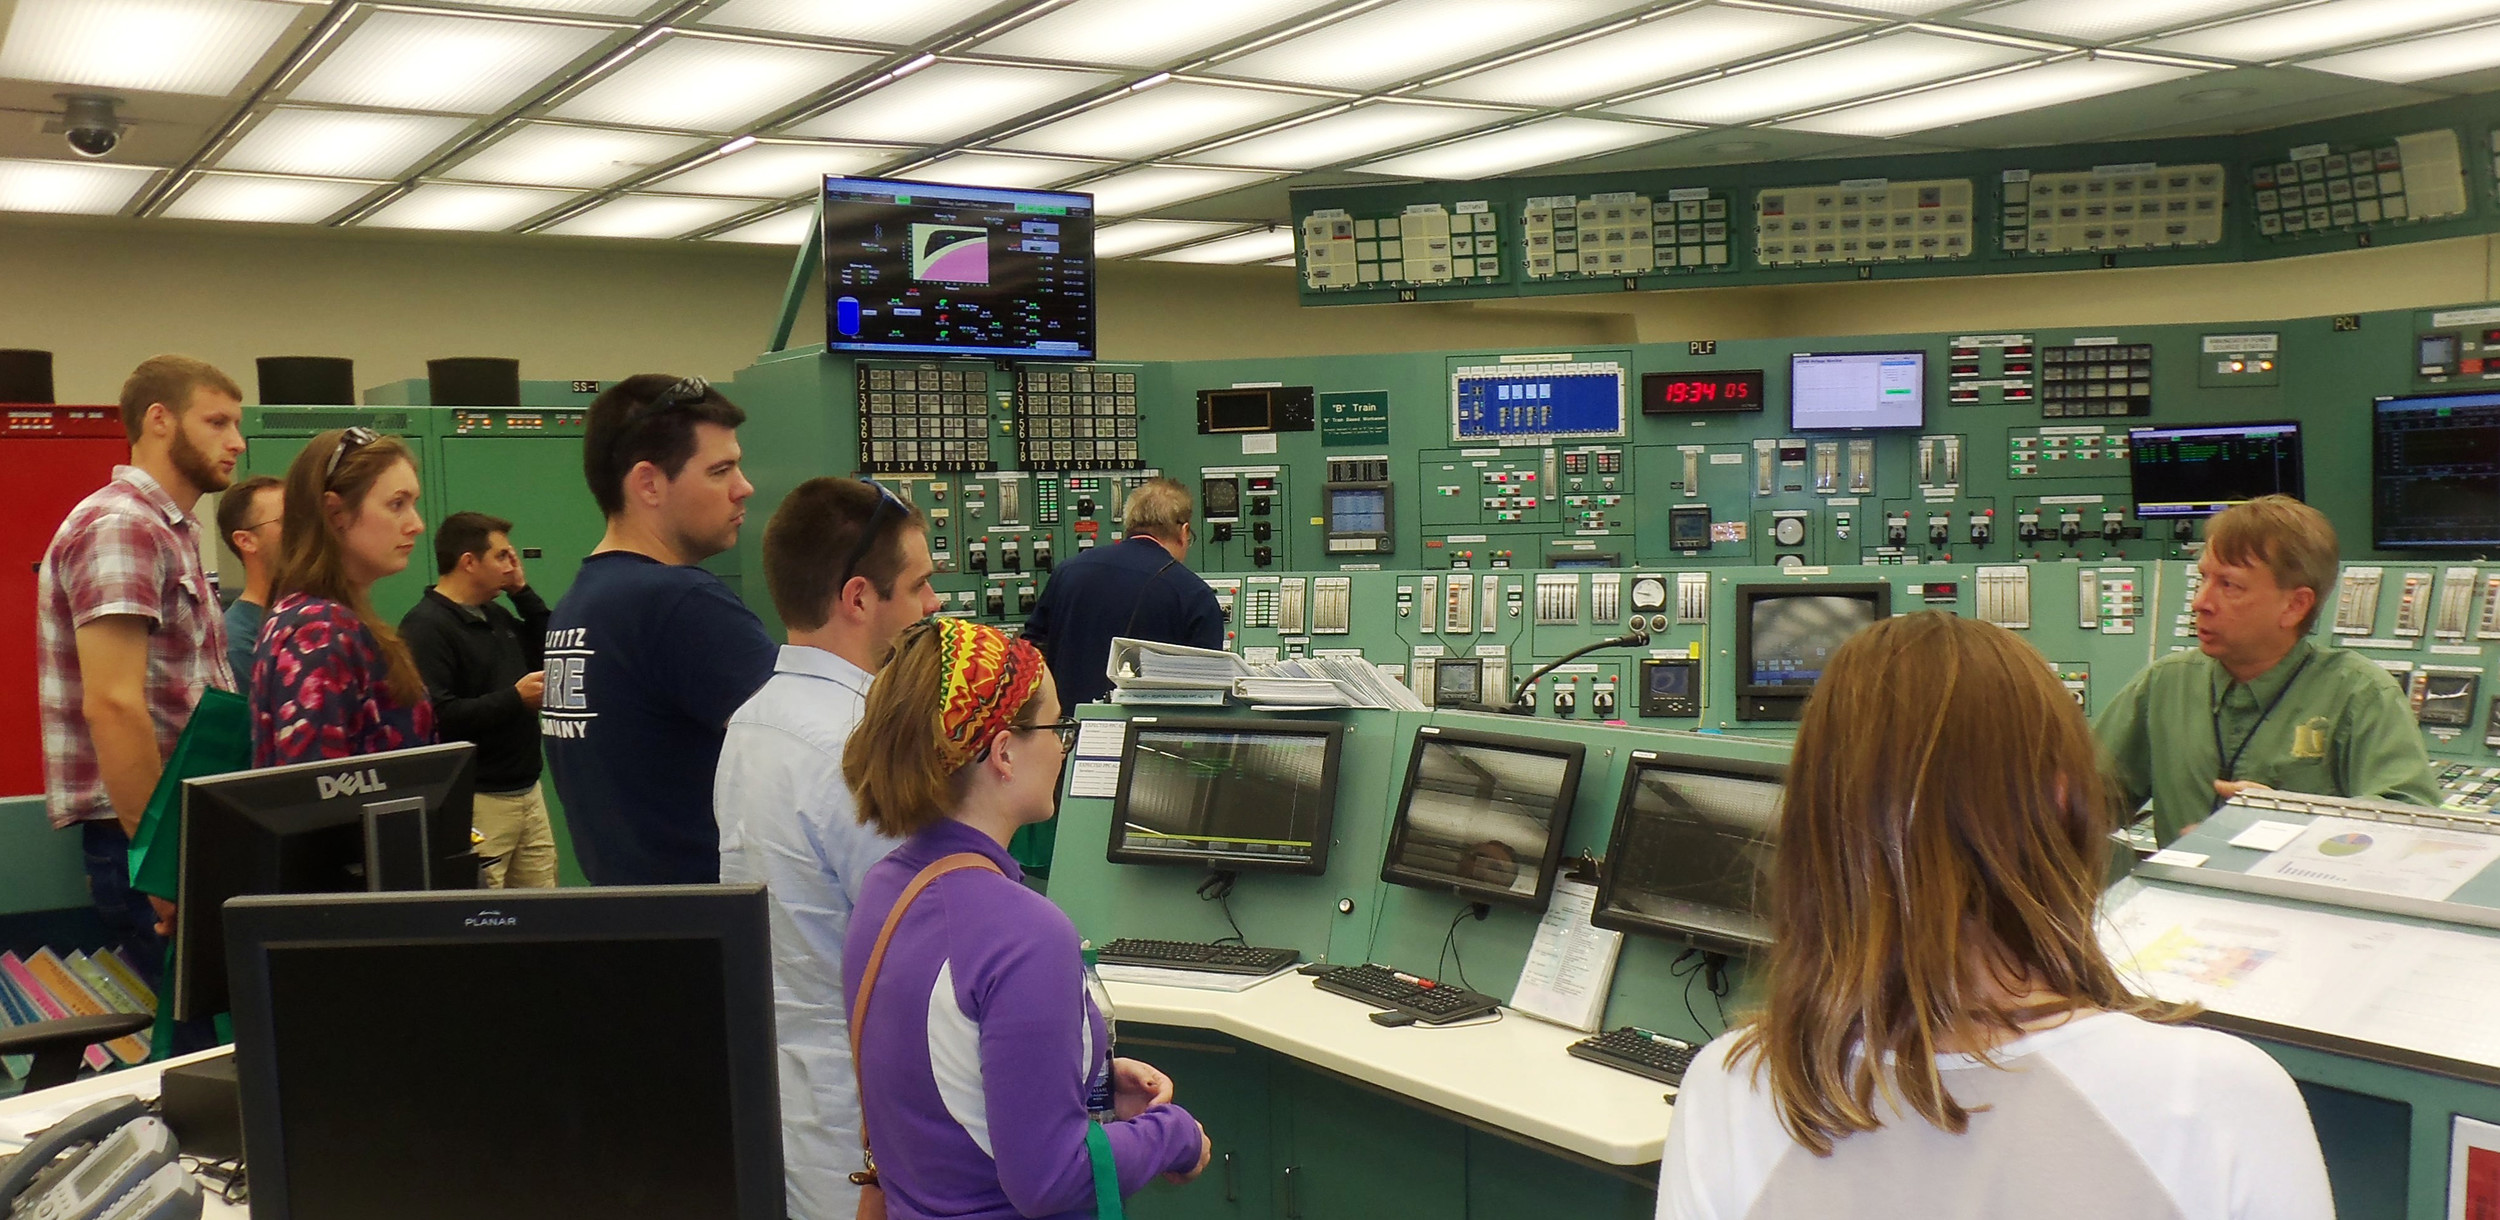 Visitors tour the Simulator Room at the Three Mile Island Training Center during the facility's Generating's Station Community Information Night held on Sept. 7.